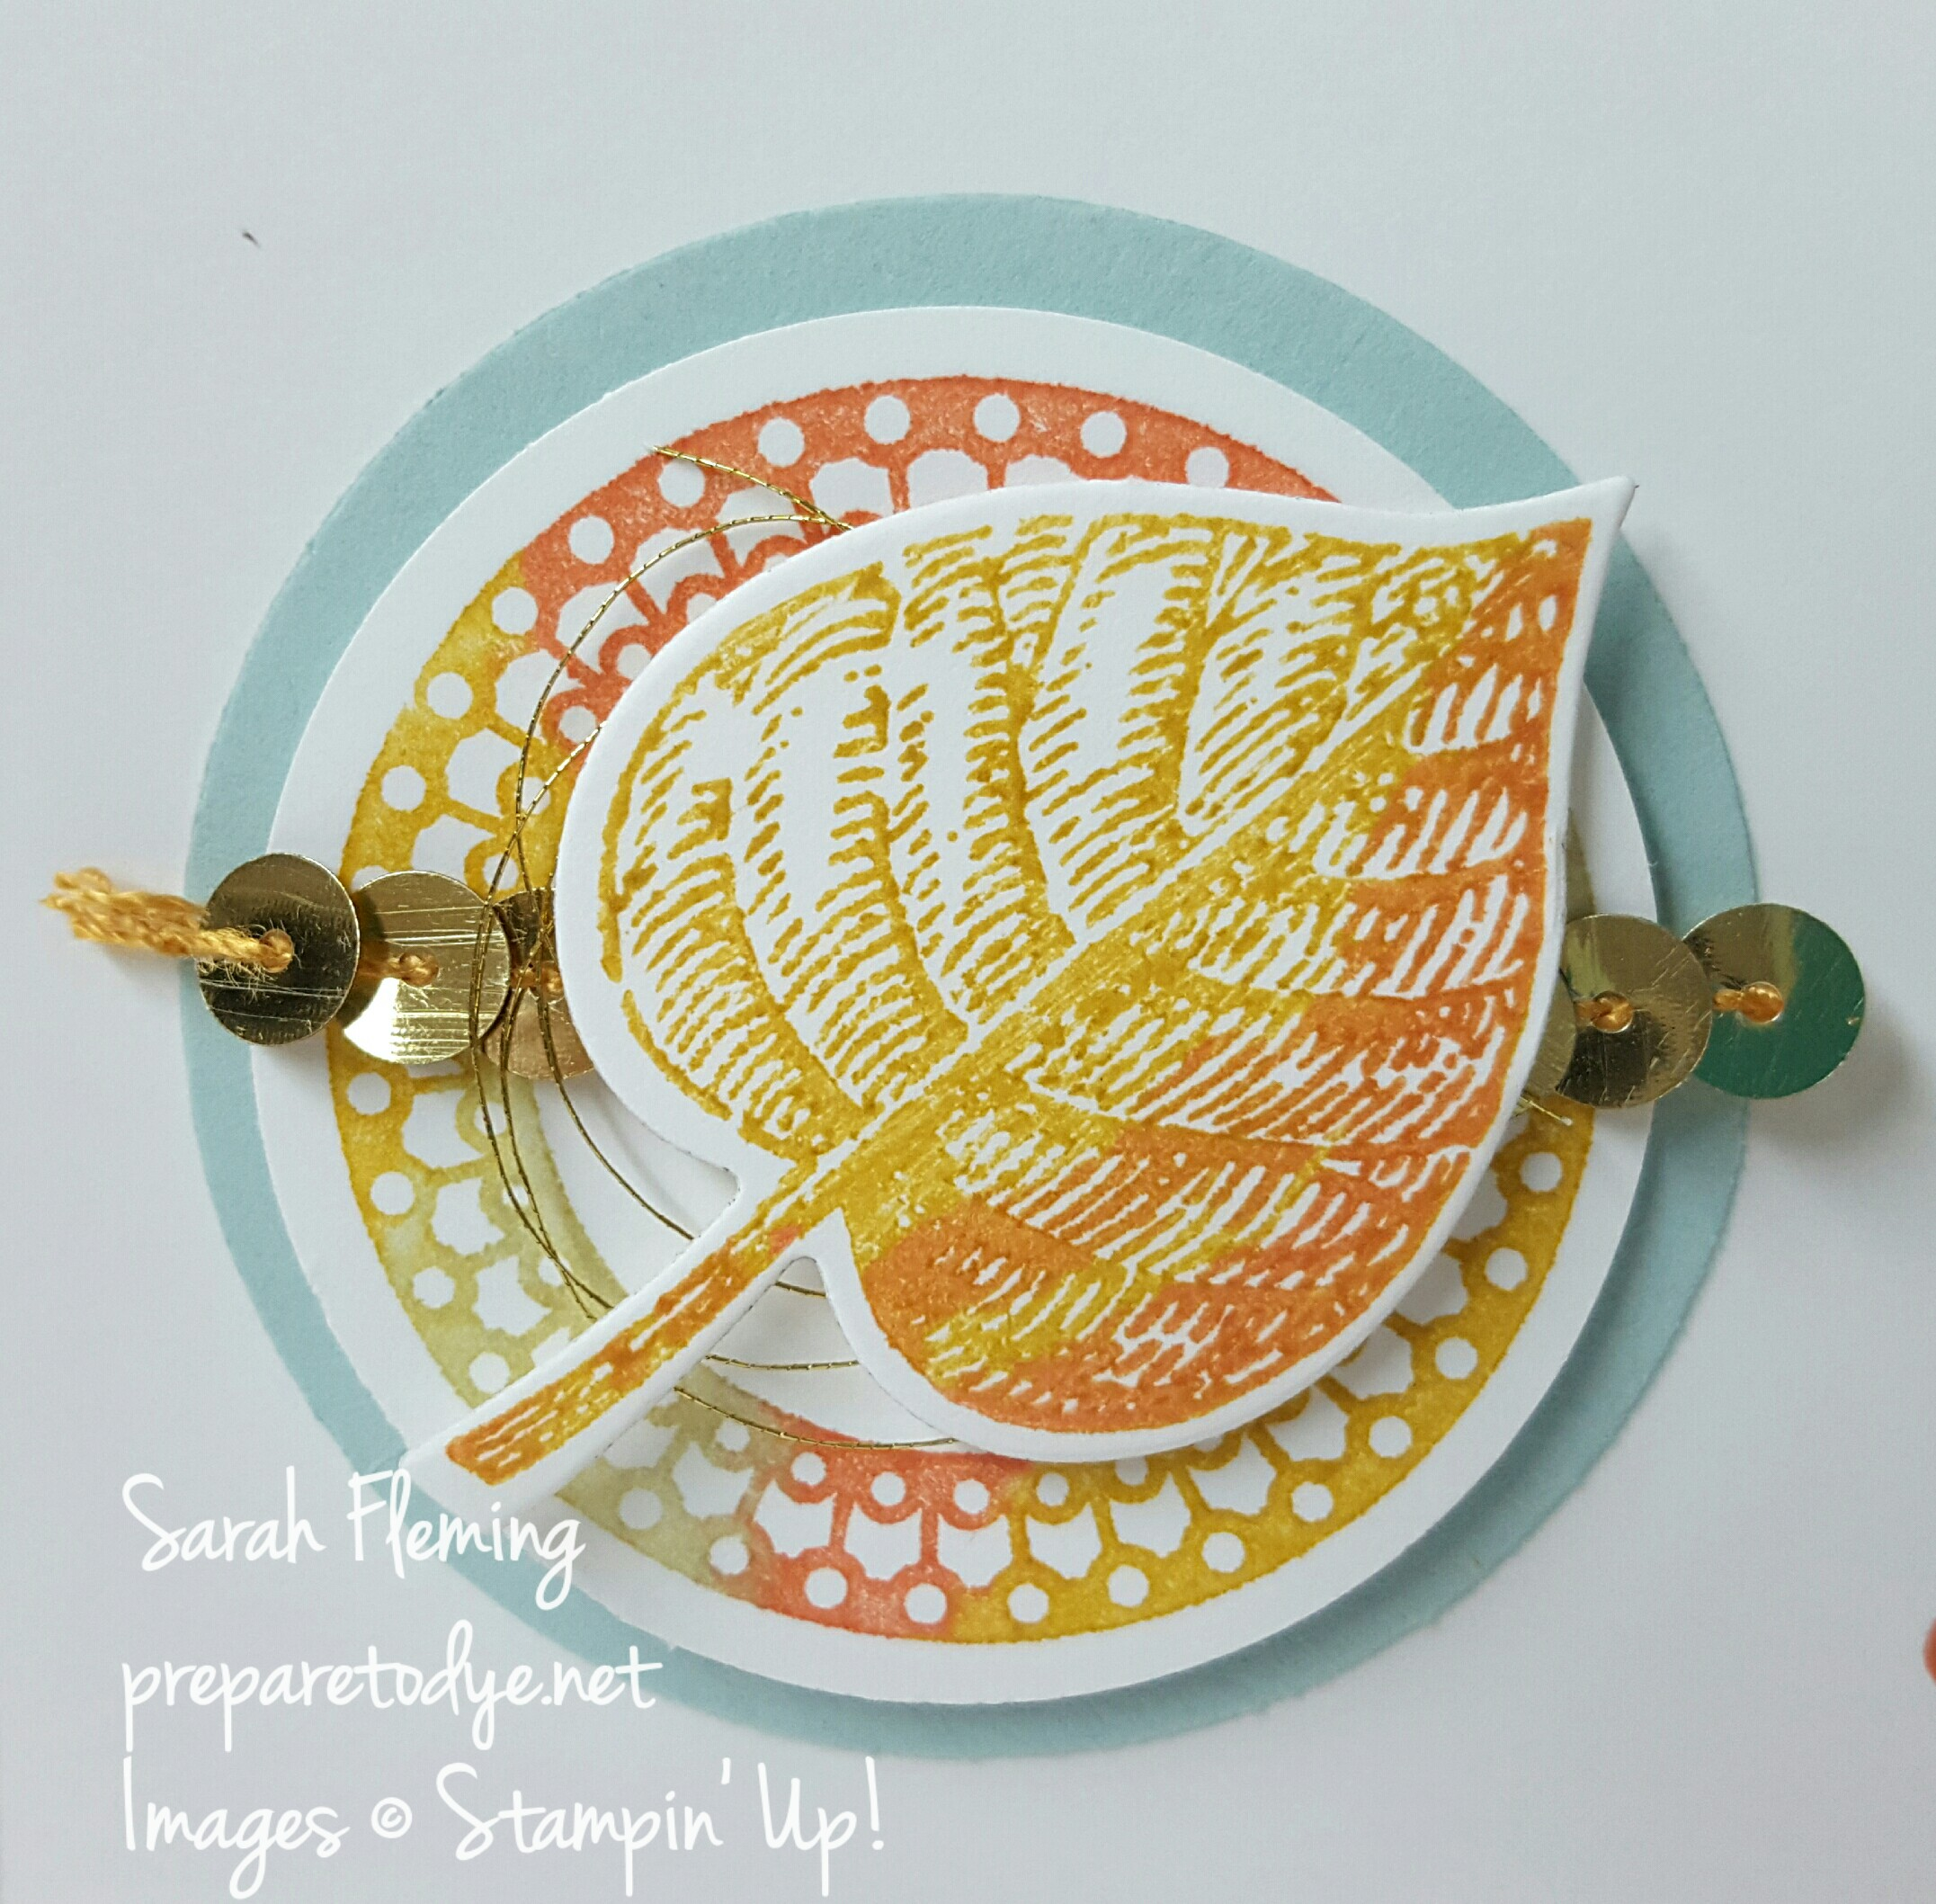 Stampin' Up! Vintage Leaves, Merriest Wishes, One Big Meaning stamps make a beautiful clean and simple fall-themed thank you card - Sarah Fleming - Prepare to Dye Papercrafts